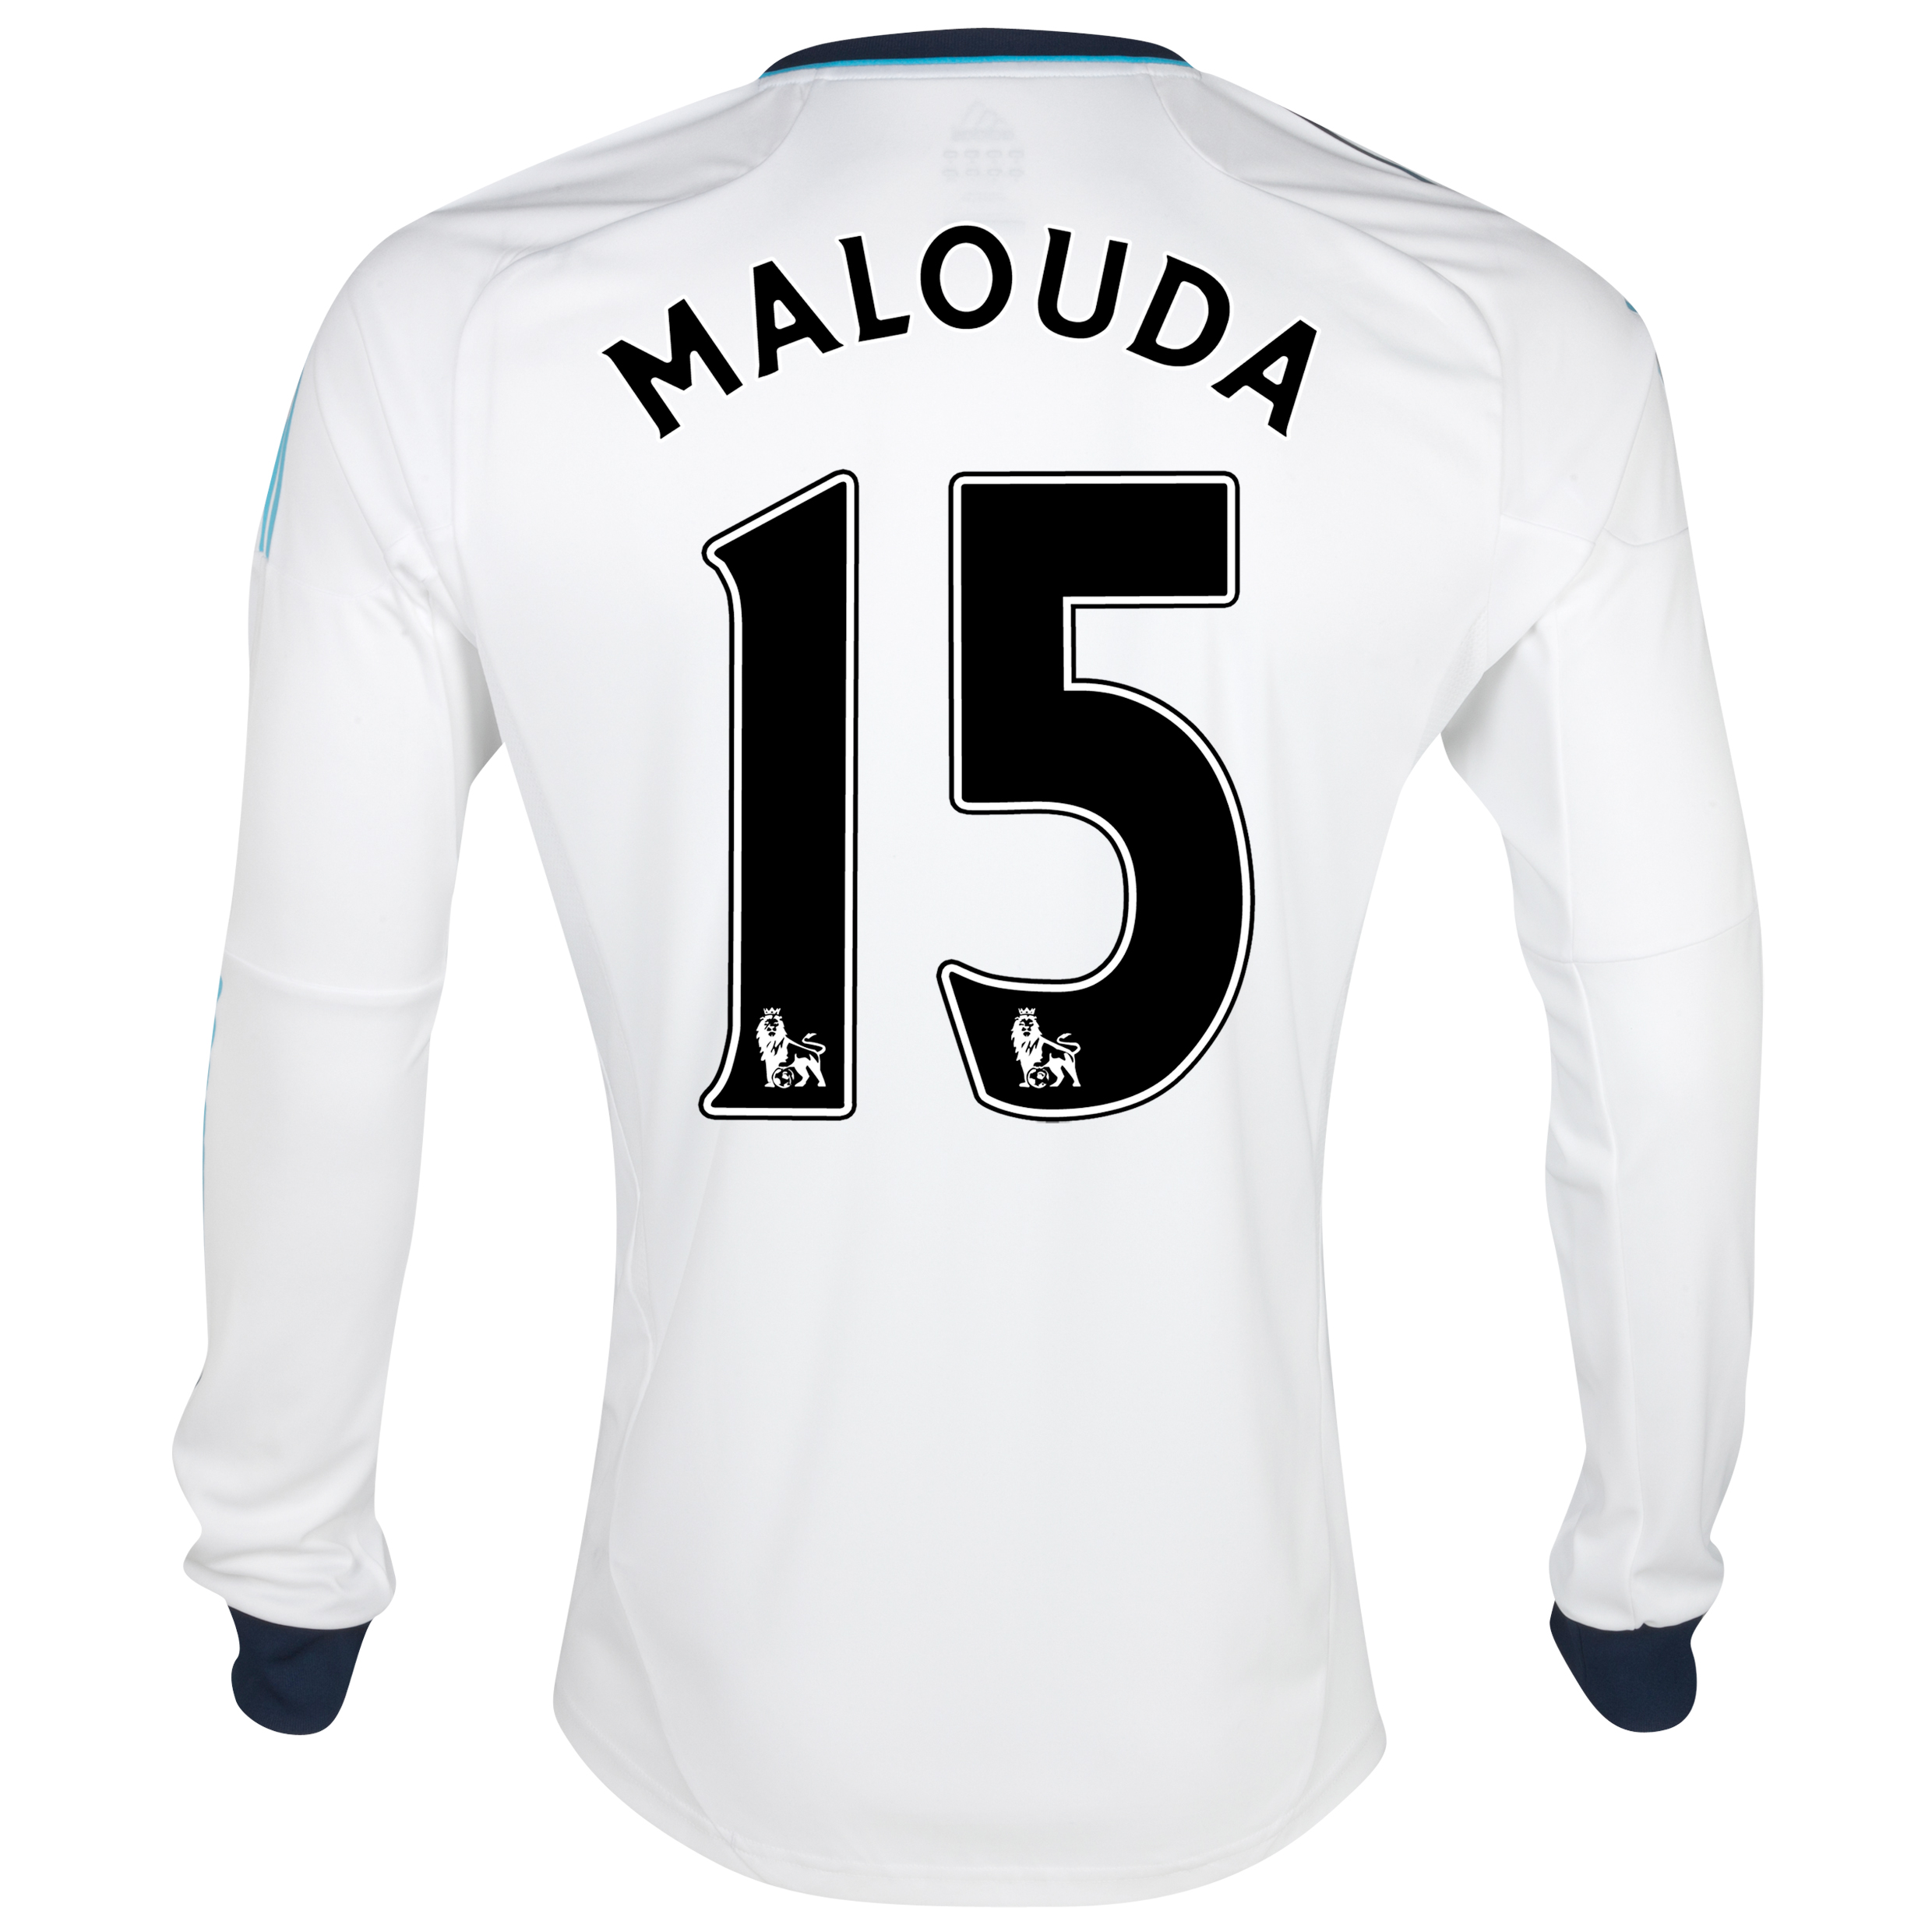 Chelsea Away Shirt 2012/13 - Long Sleeved with Malouda 15 printing